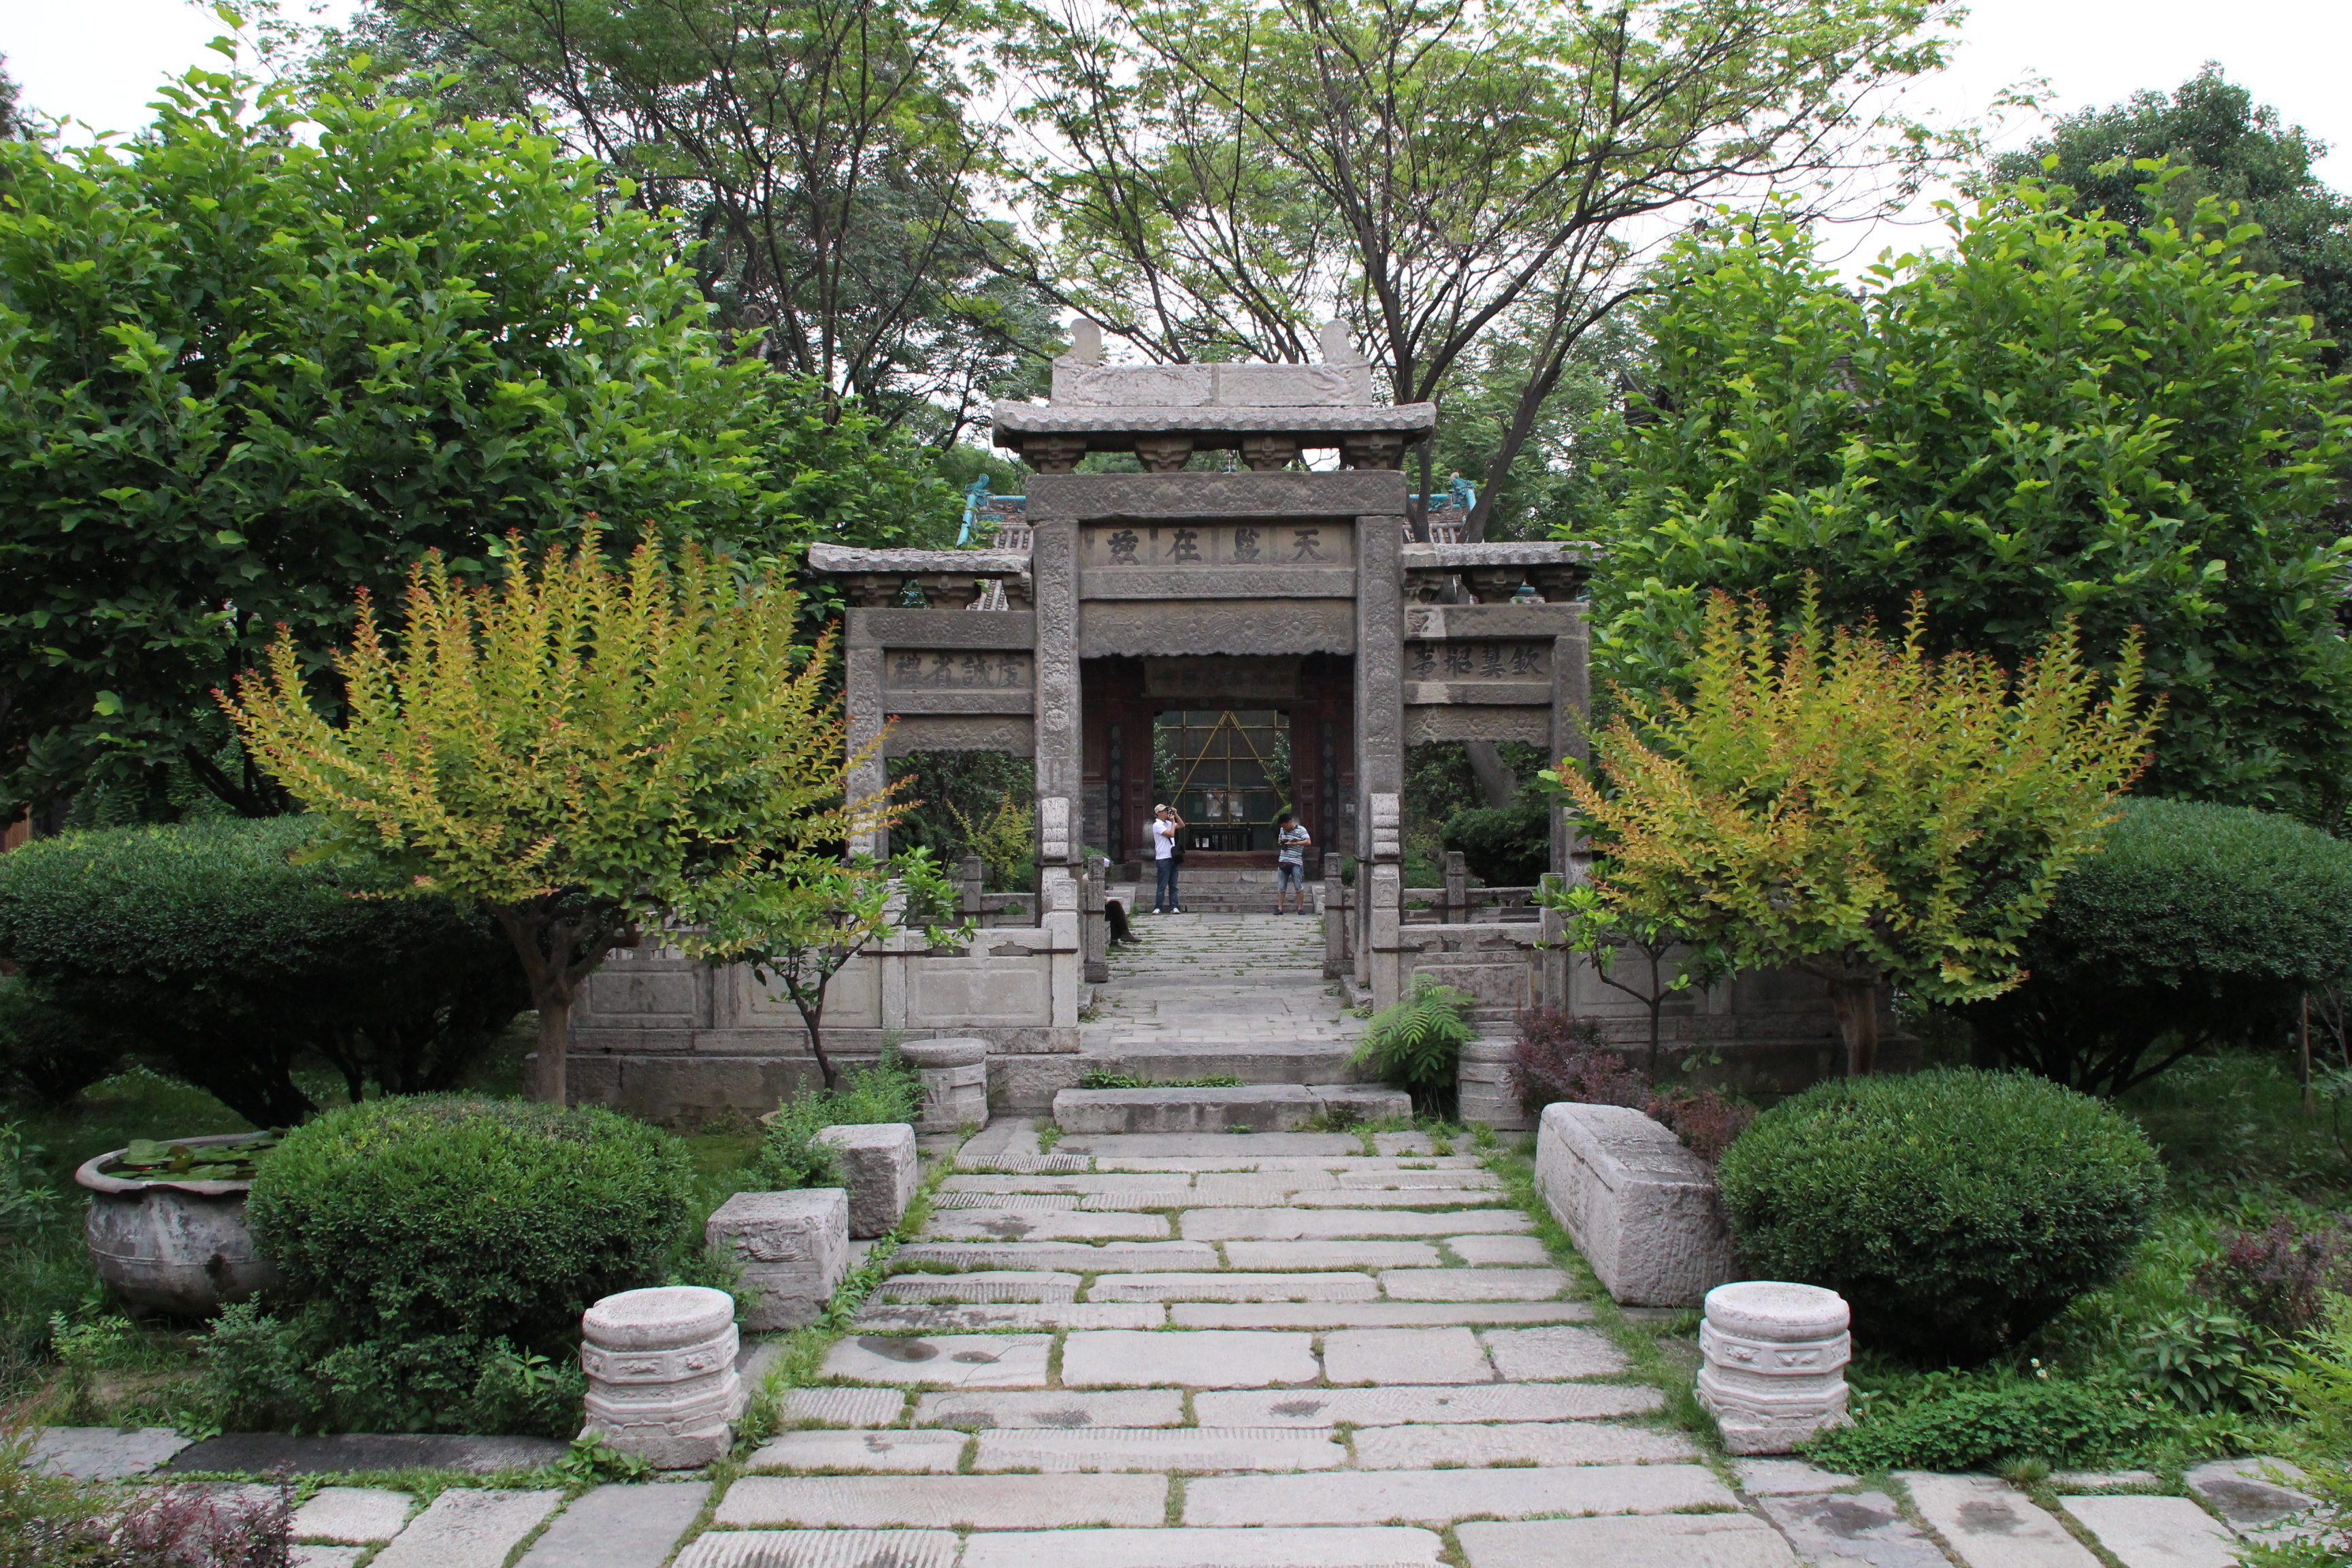 The most beautiful mosques to visit: Second courtyard of the Great Mosque of Xi'An, Xi'an, China